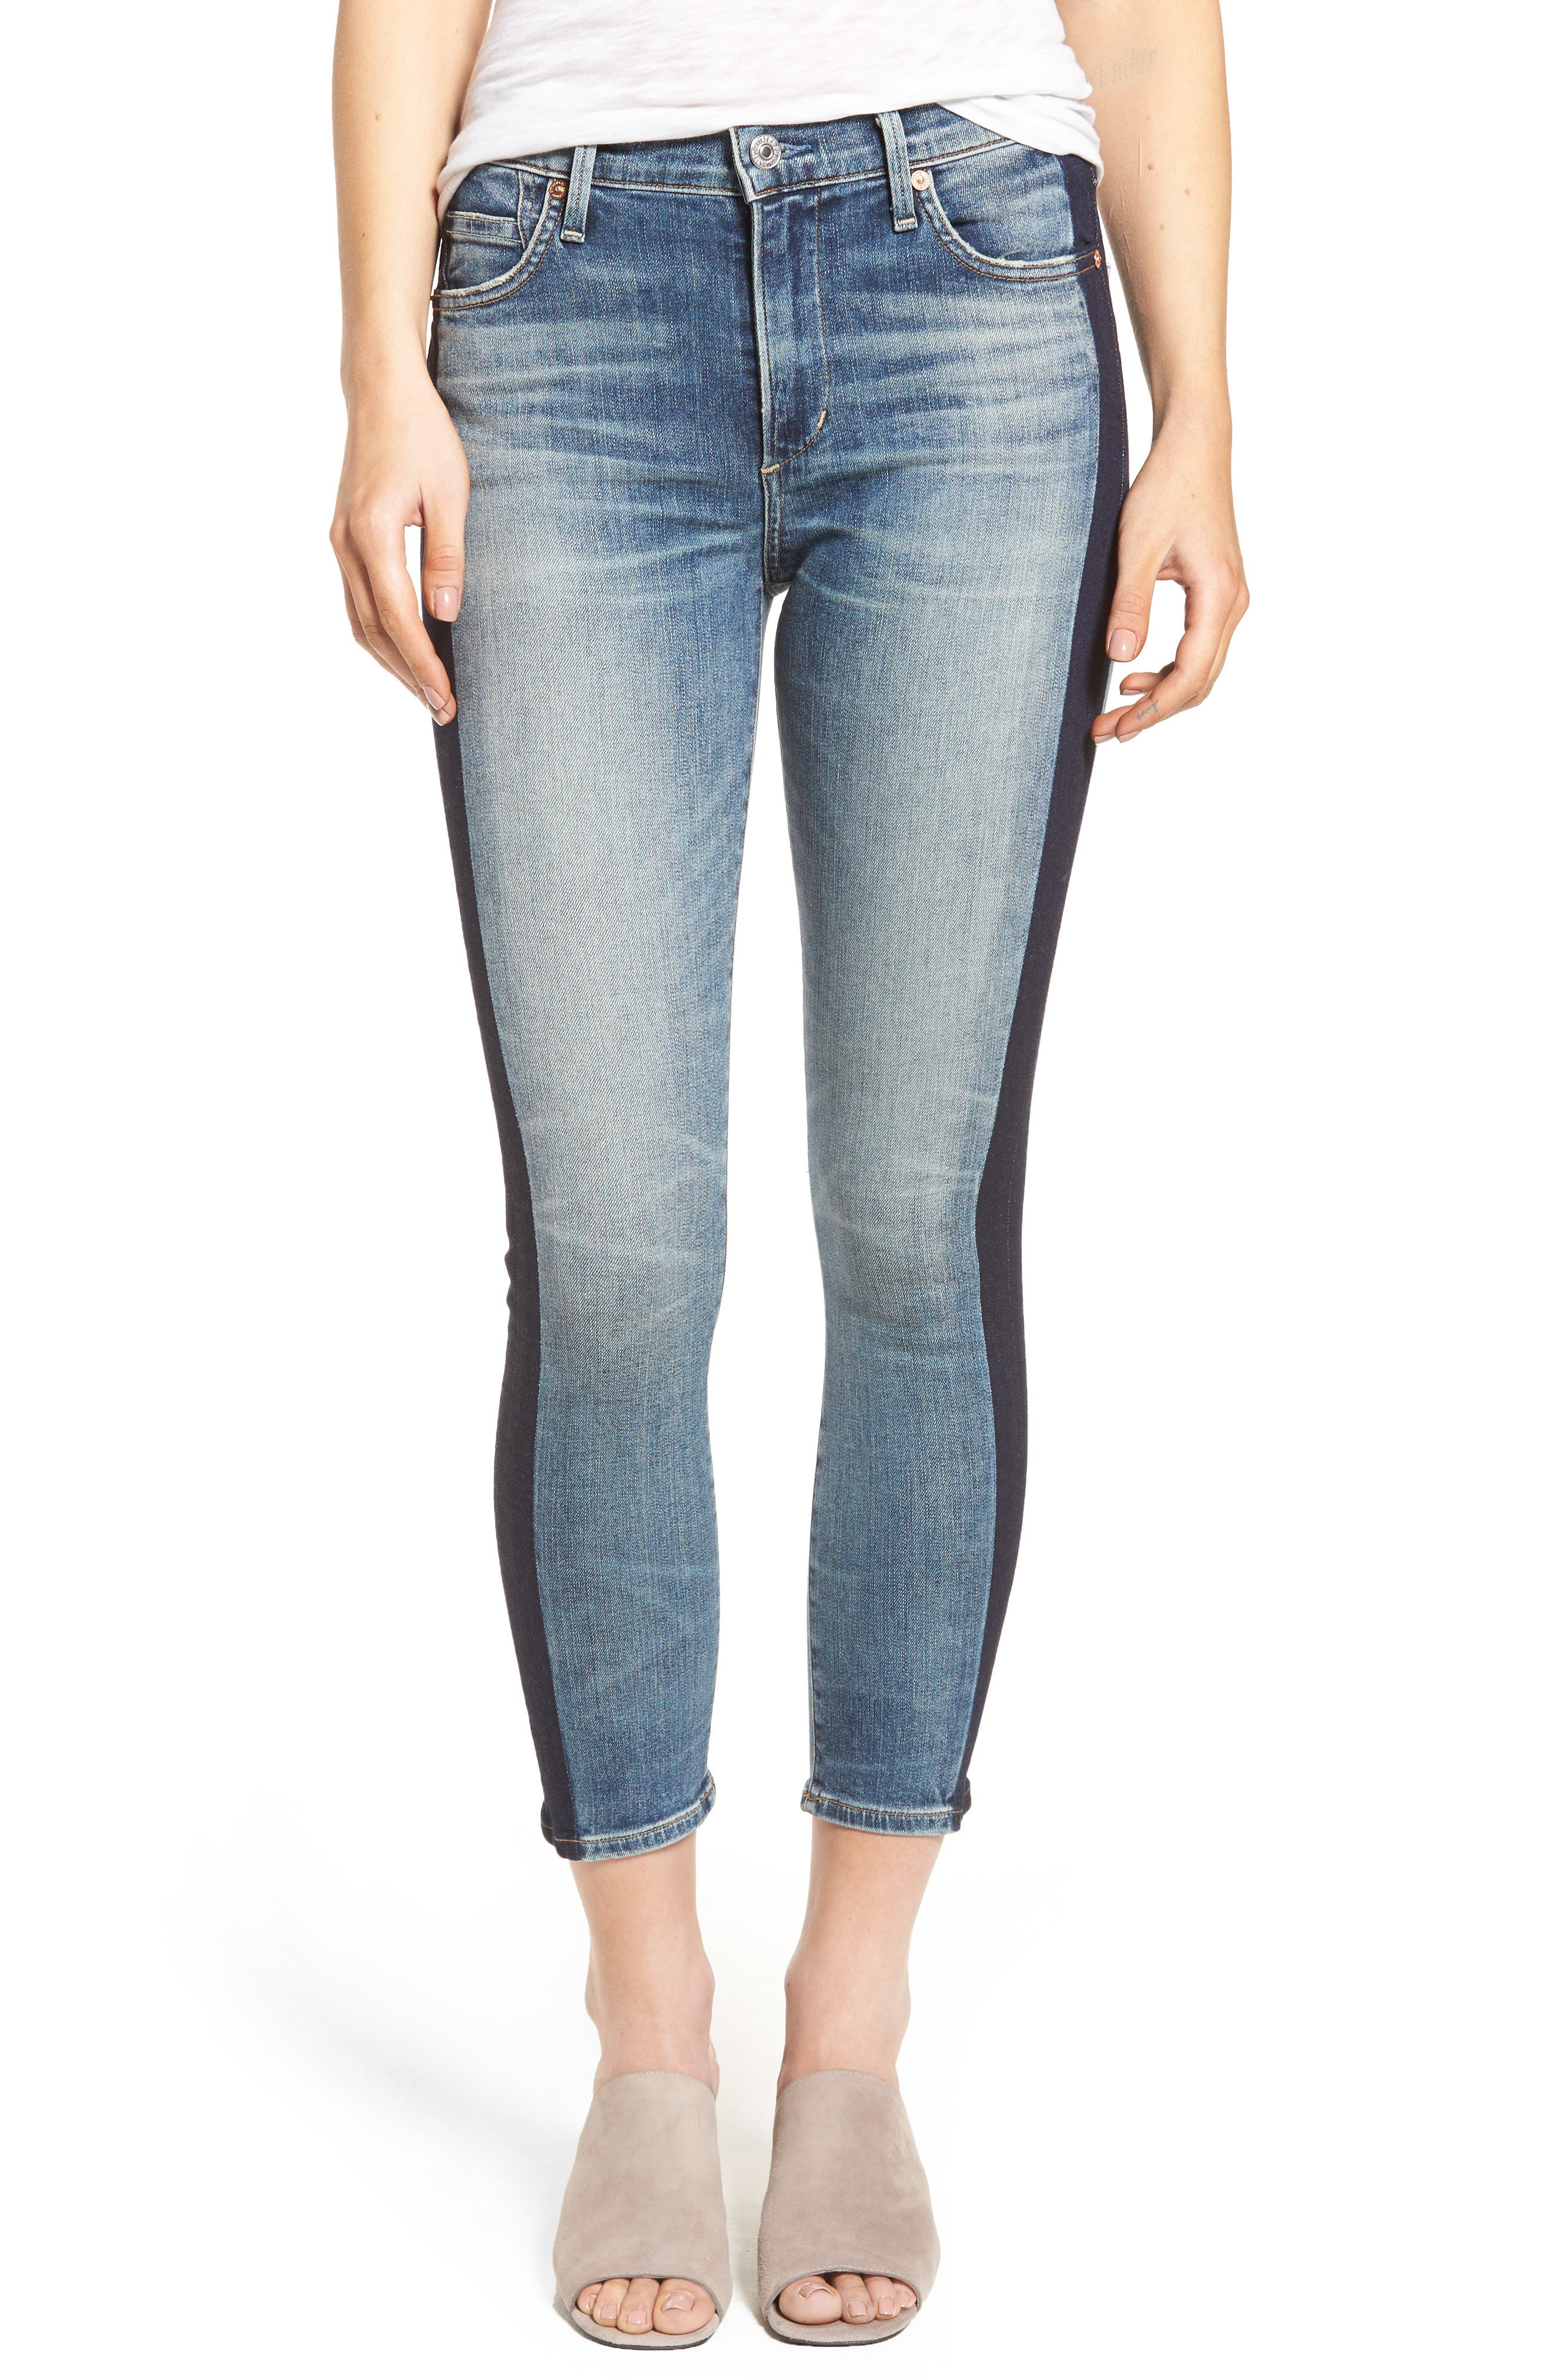 Alternate Image 1 Selected - Citizens of Humanity Rocket High Waist Crop Skinny Jeans (Shadow Stripe)